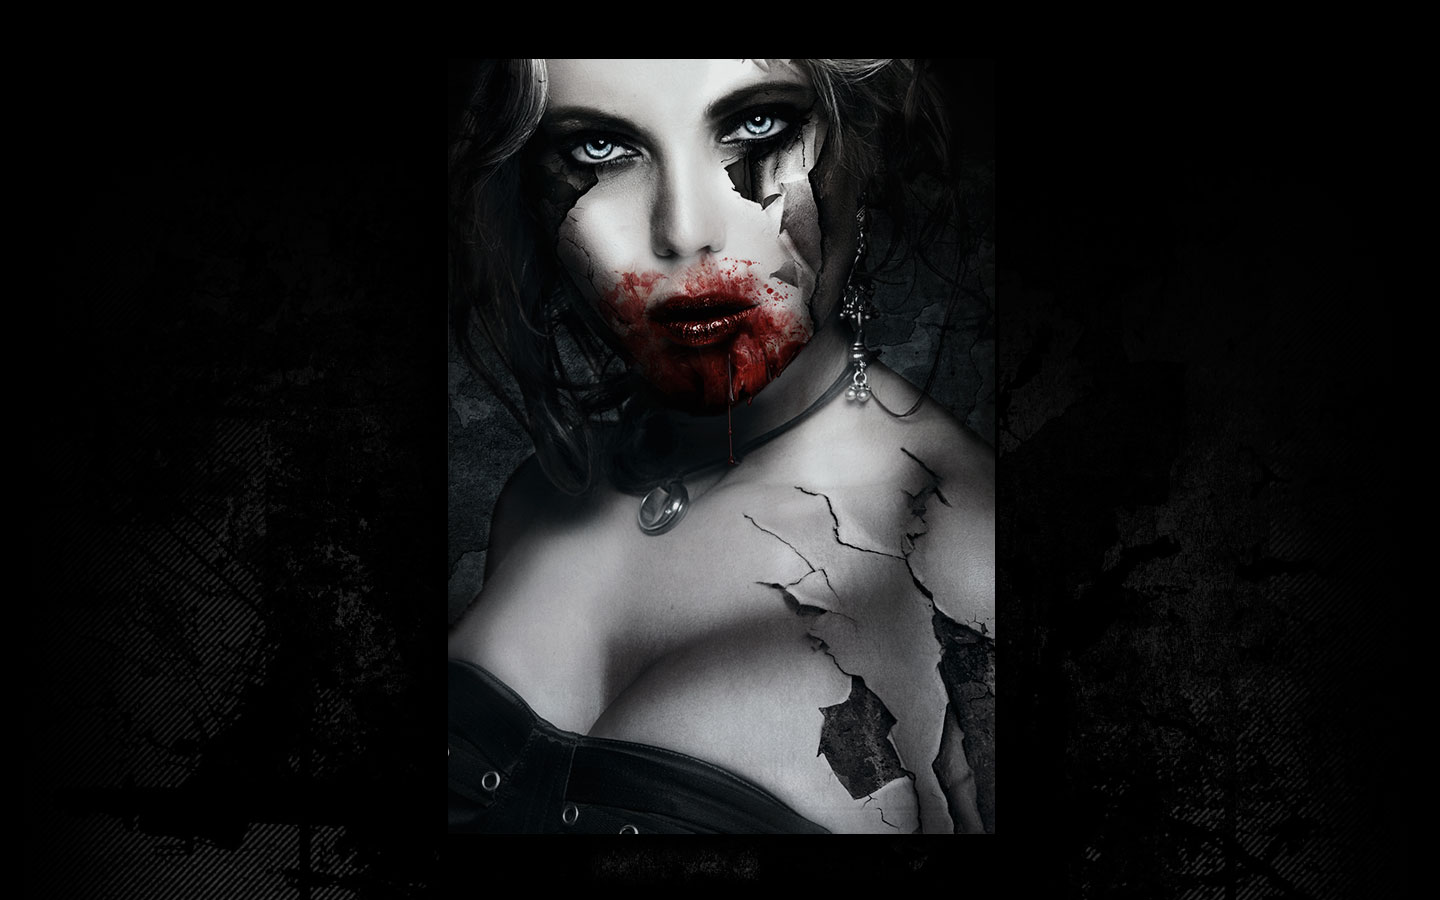 Und3ad - Laurent Lemoigne - Donanubis - Don Anubis - Graphic Art - Digital Art - Canvas - Print - Geneva - Switzerland - Surreal - Conceptual -People - Dark - Fantasy - Beauty - Woman - Fetish - Goth - Gothic - Steel - Death - Life - Zombie - Undead - Horror - Movie - Decay - Skin - Vampire - Walking Dead - Metal - Hard - Rock - Death - Band - CD Cover - Hard - Rock - Illustration